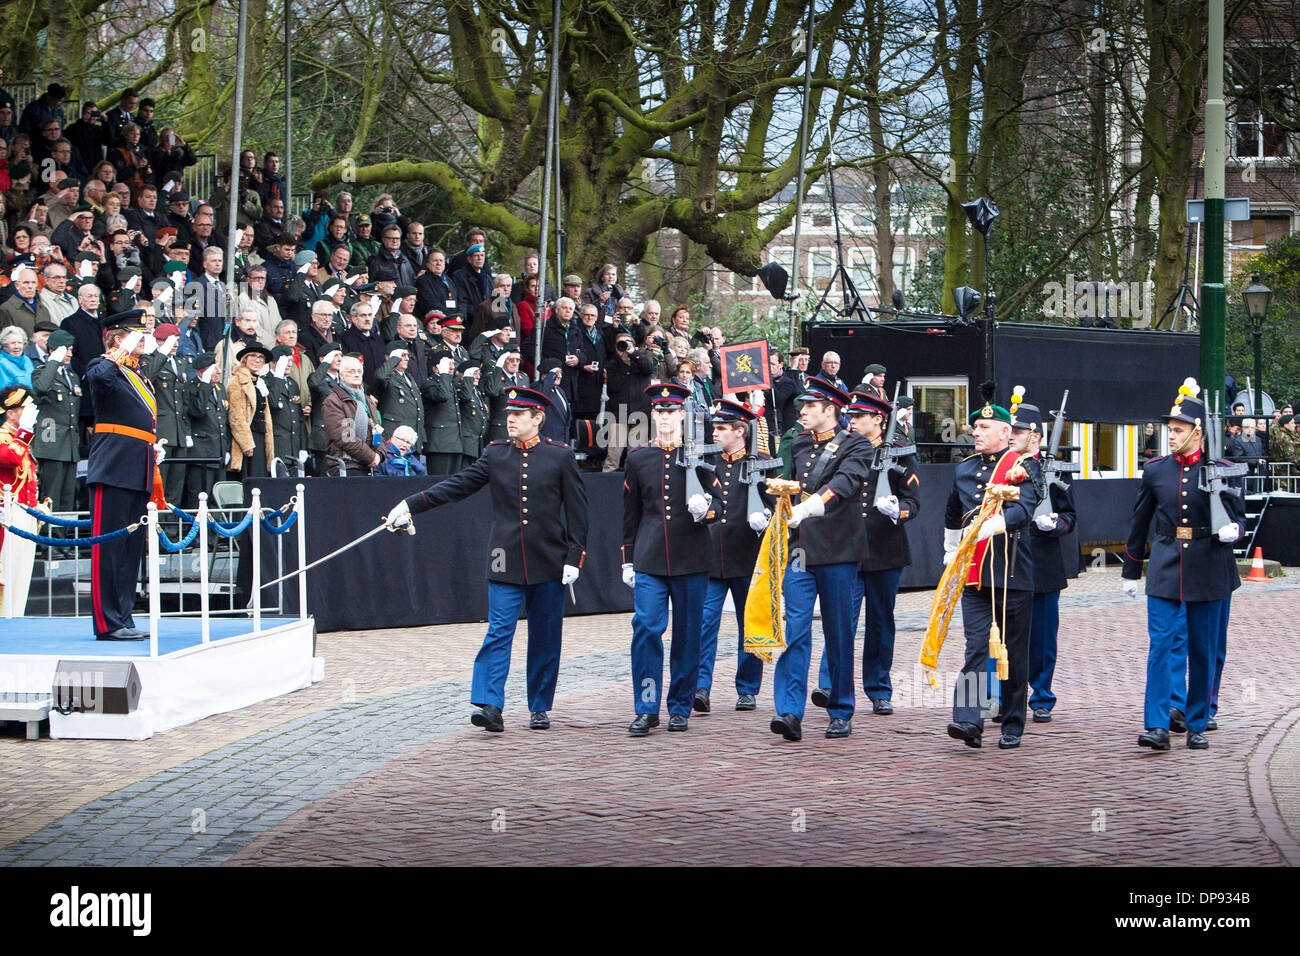 The Hague, Netherlands. 9th January 2014. Photo taken on Jan. 9, 2014 shows a scene of the ceremonial parade to celebrate Dutch Army's 200th anniversary in the Hague, the Netherlands. (Xinhua/Alamy Live News) - Stock Image